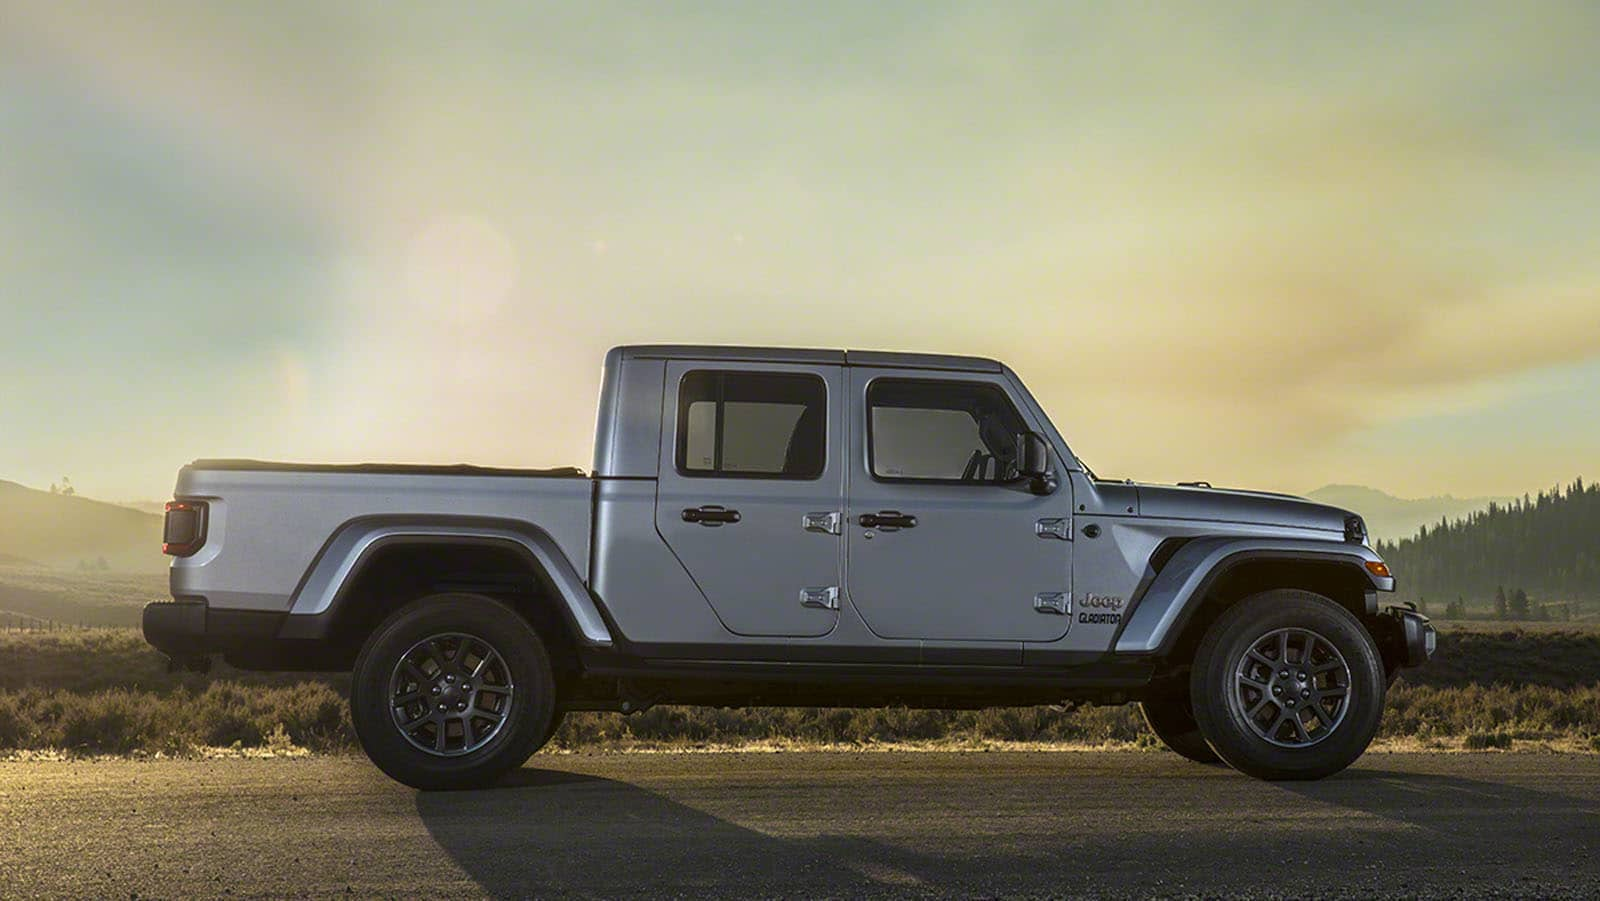 2020 Jeep Gladiator Pictures Gallery and Quick Info ...